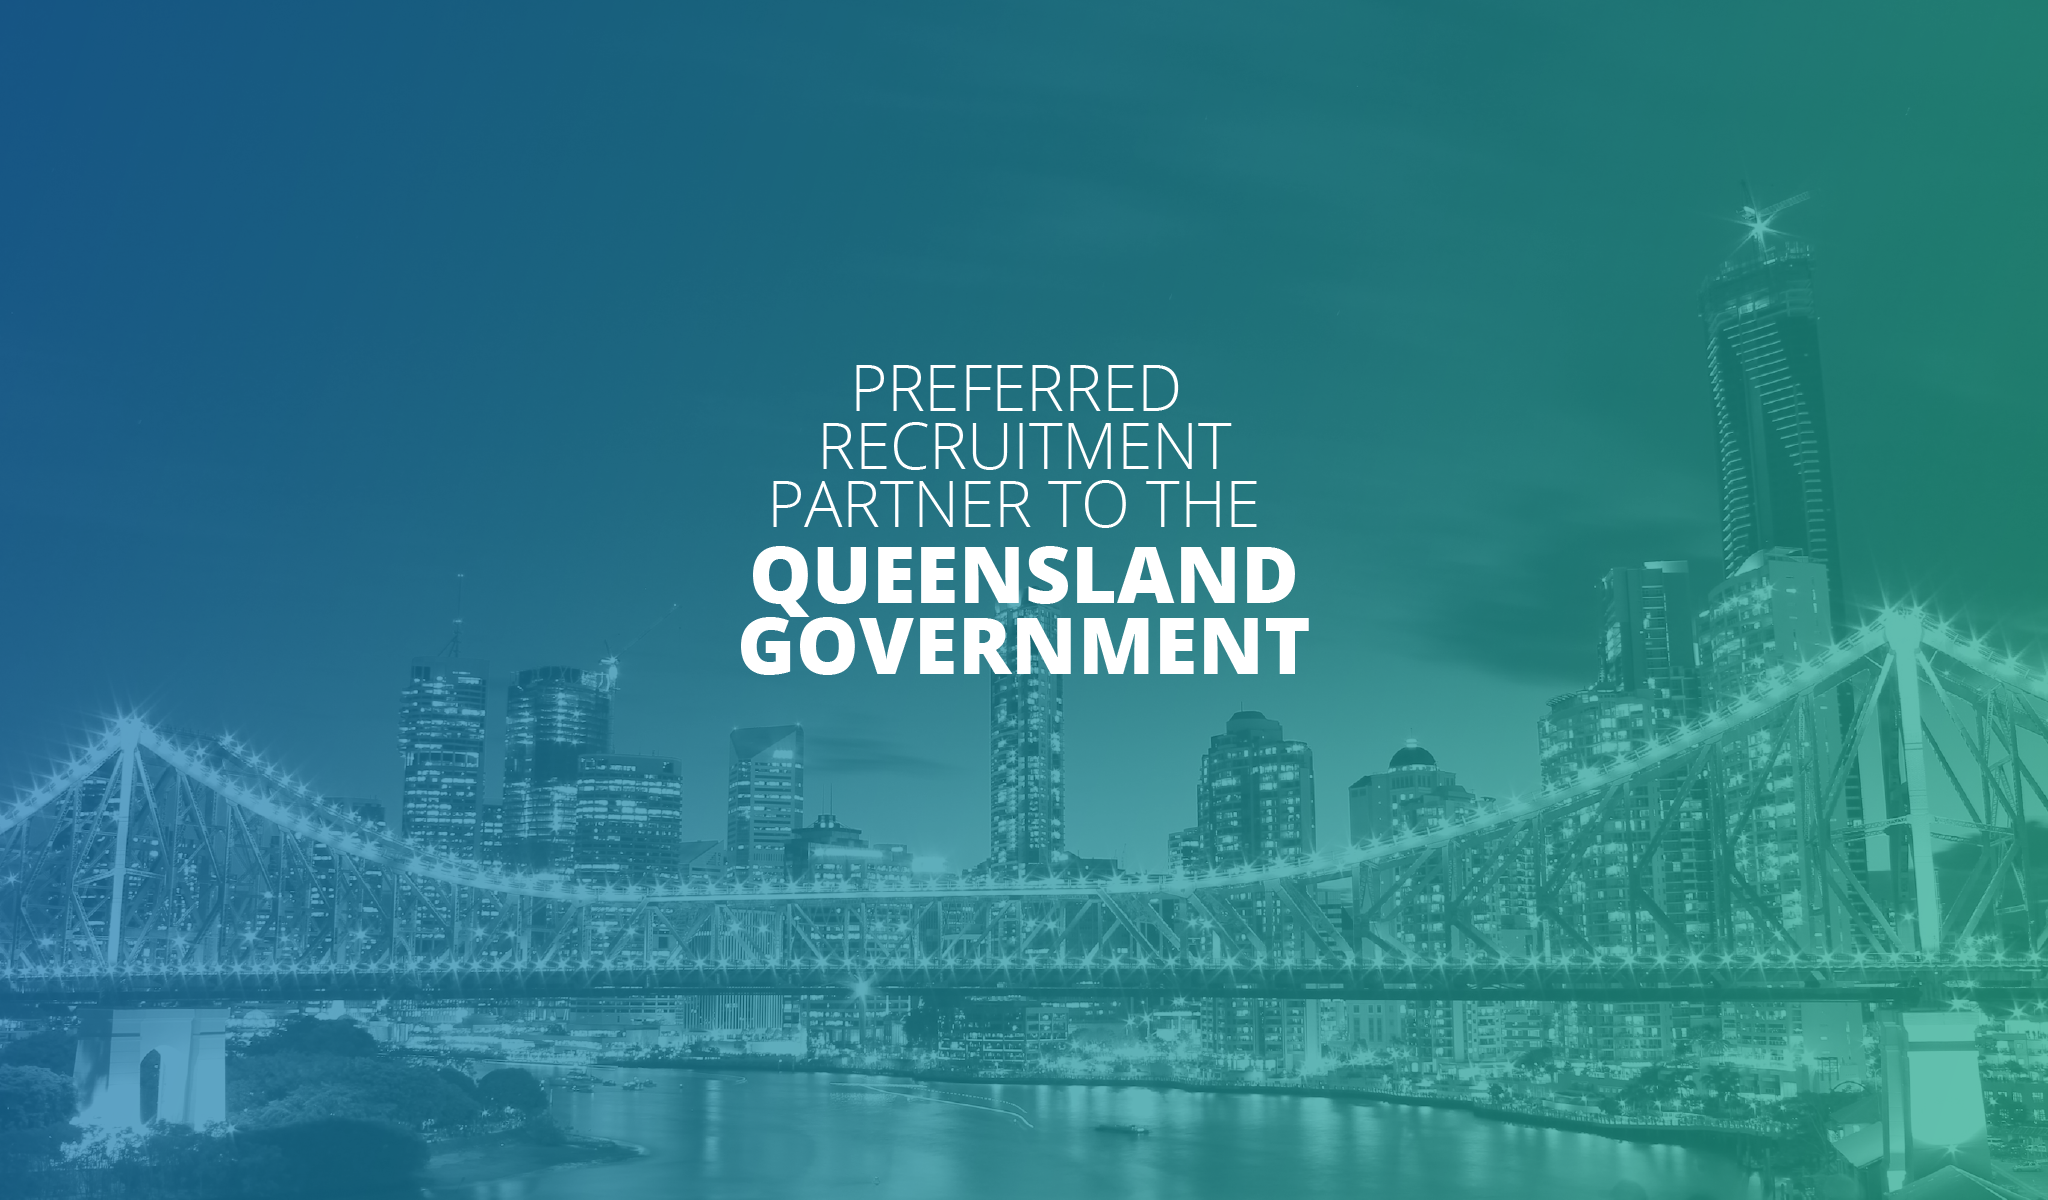 M&T Resources – preferred recruitment partner to Queensland Government